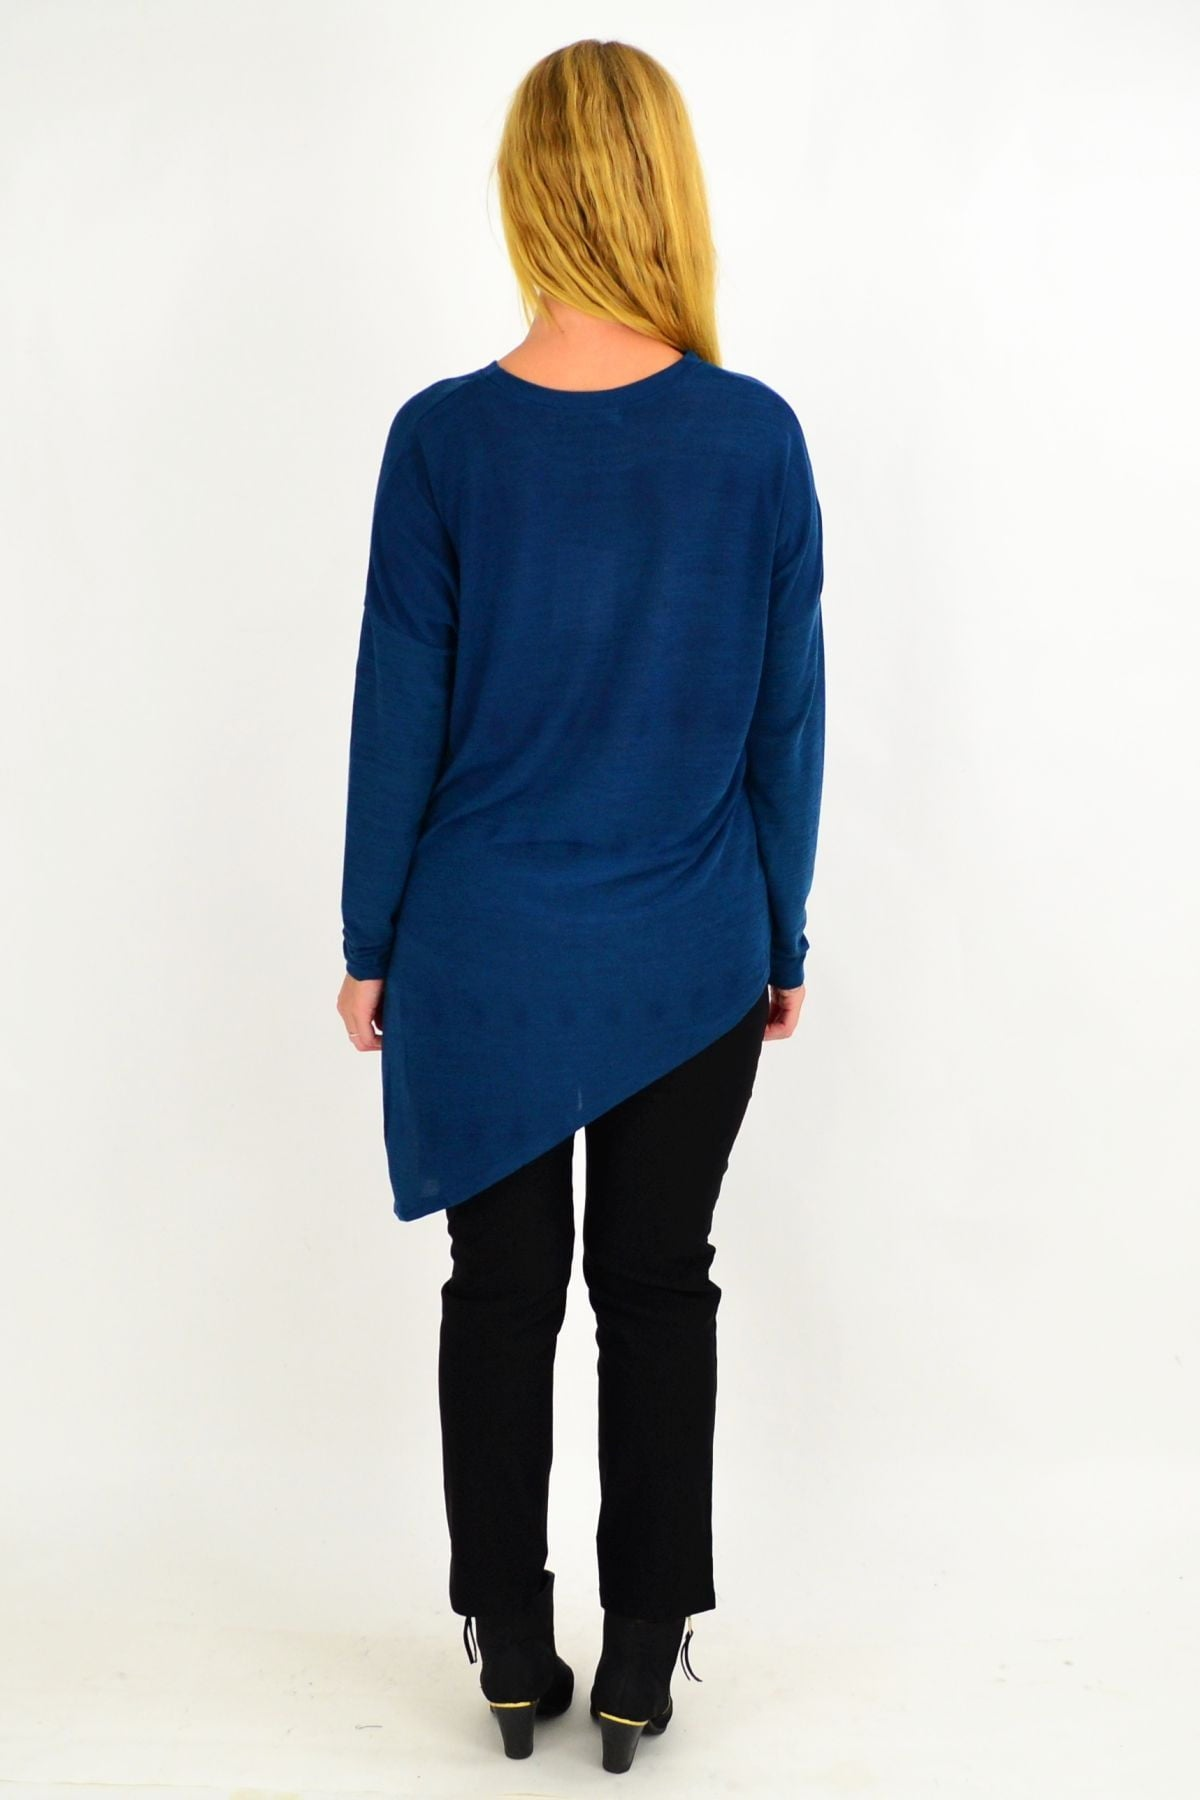 Teal Blue Swiss Spot Knit Tunic Top | I Love Tunics | Tunic Tops | Tunic | Tunic Dresses  | womens clothing online